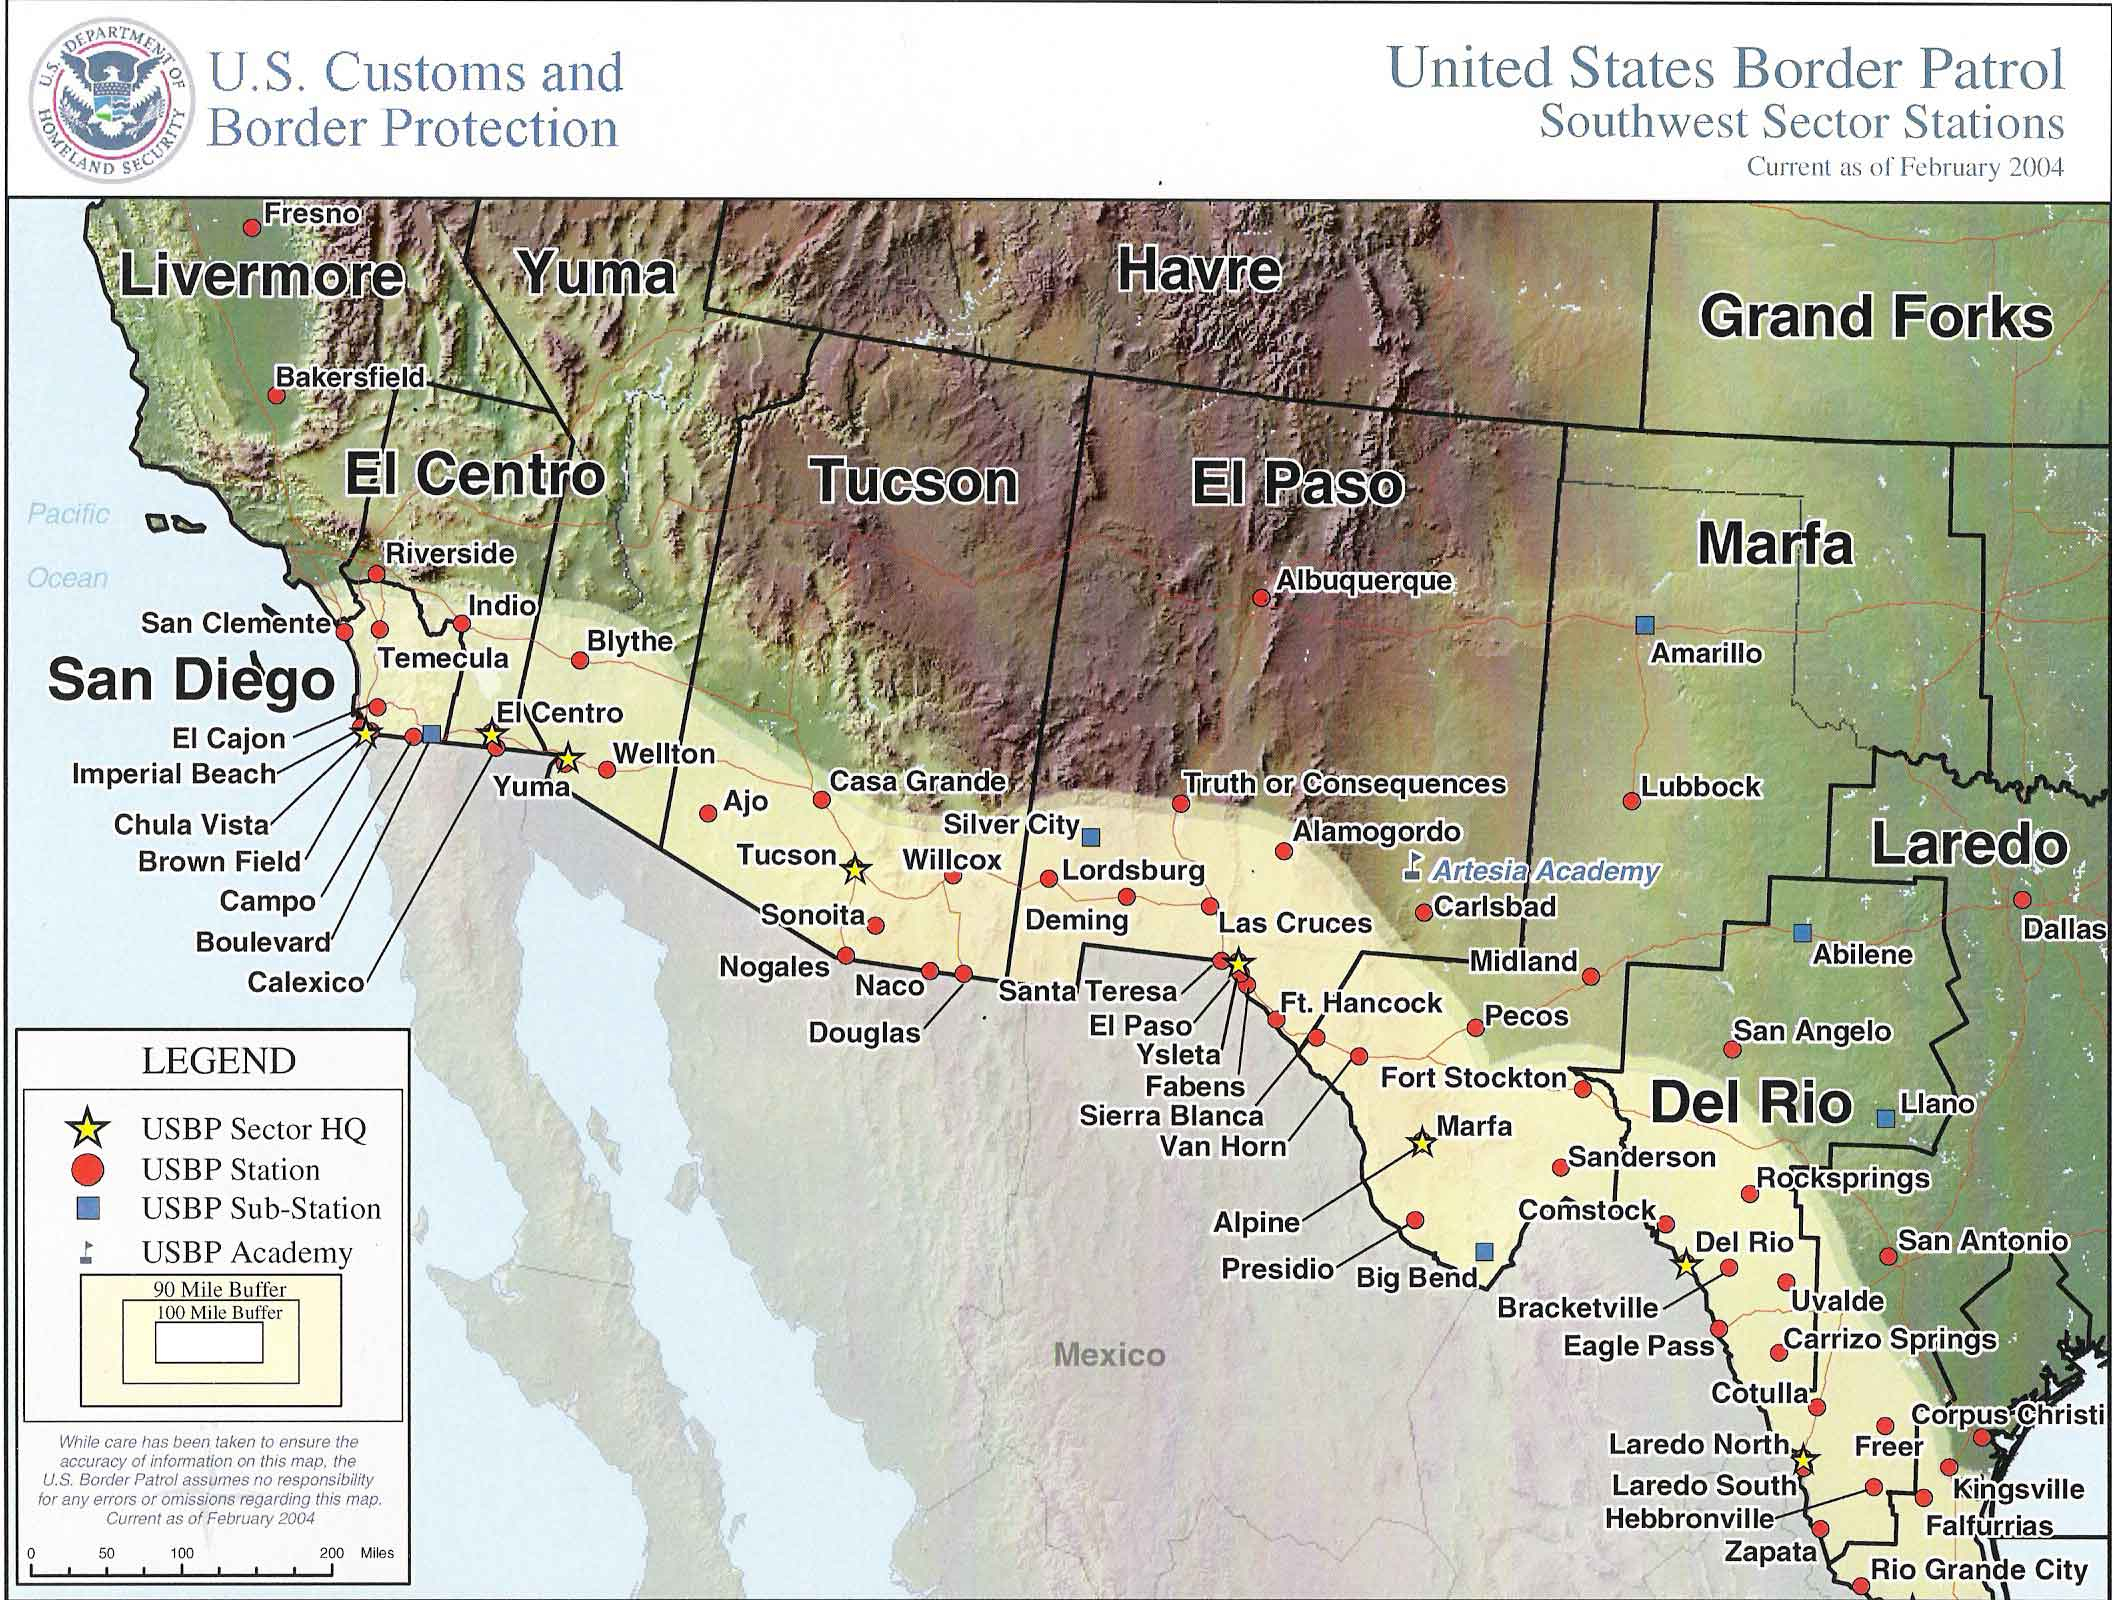 Border Patrol Checkpoints Map Texas | Business Ideas 2013 - Border Patrol Checkpoints Map Texas